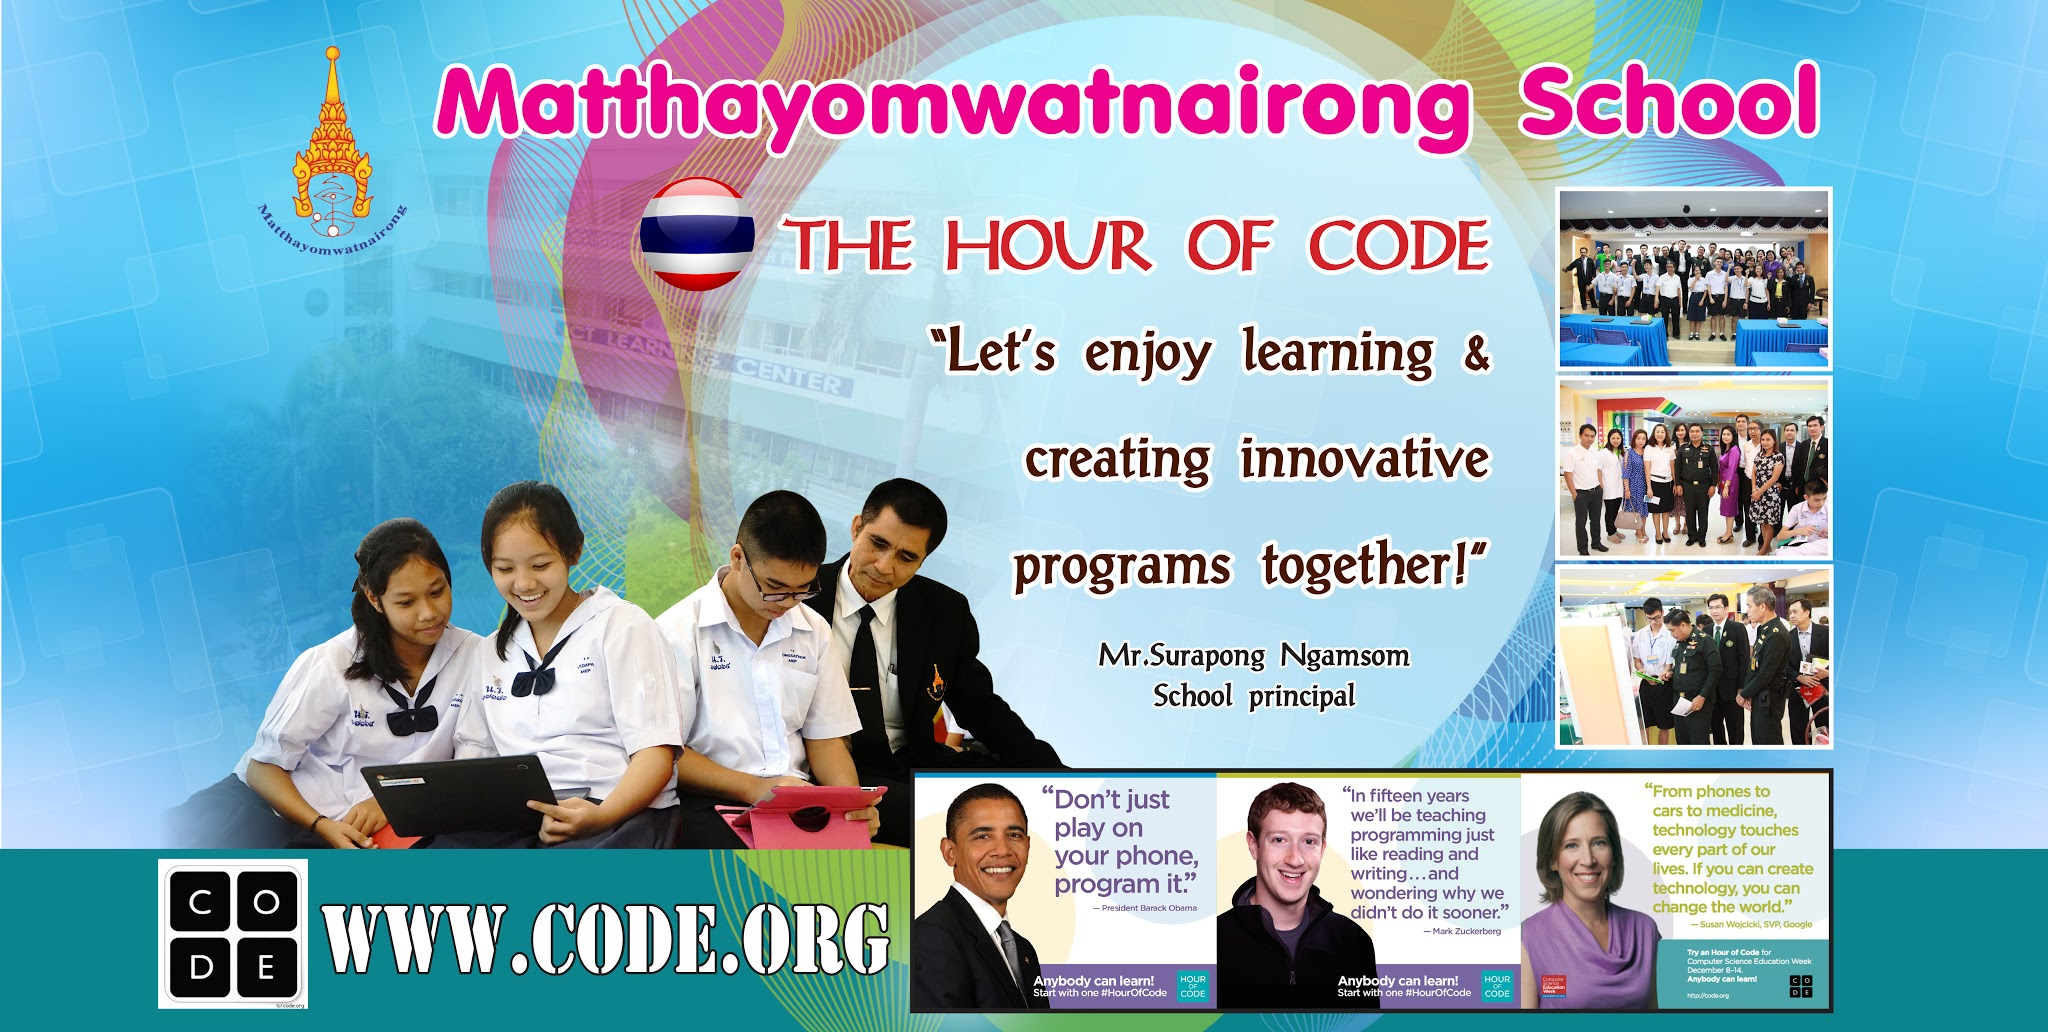 The Hour of Code 2016 on December 13, 2016.